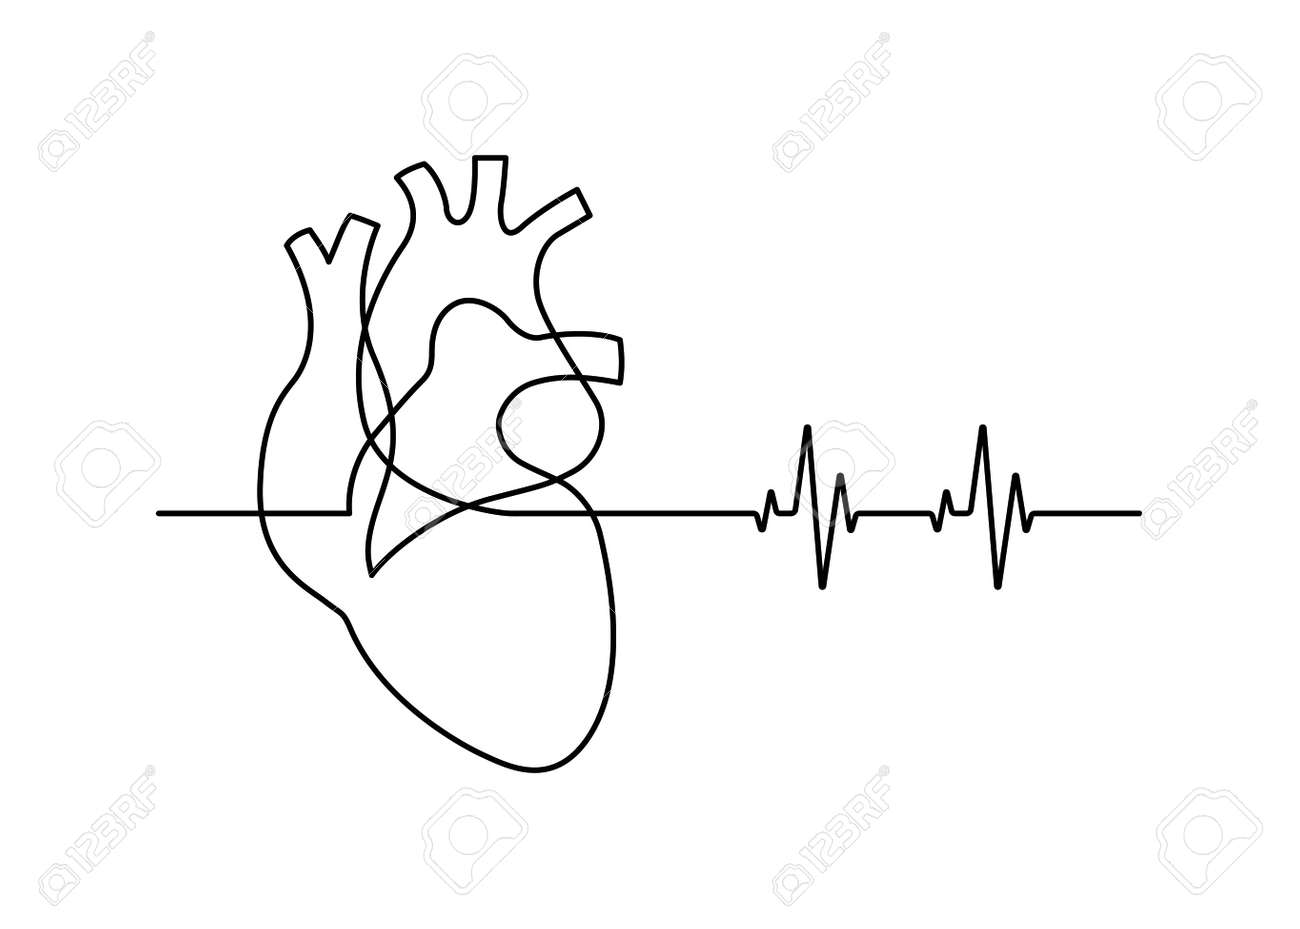 Continuous Line Drawing Of Heart With Heartbeat On White Background